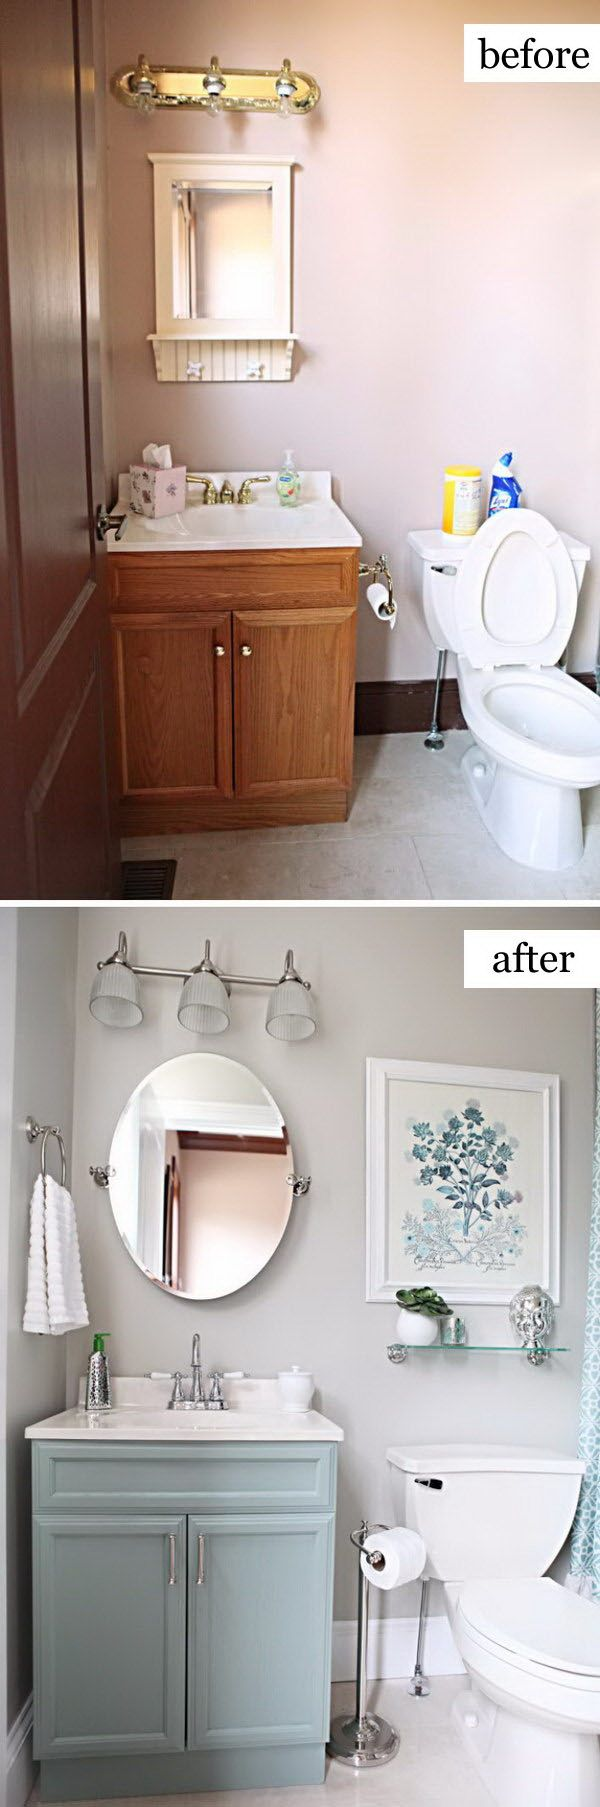 Image Gallery Website Before and After Makeovers Most Beautiful Bathroom Remodeling Ideas